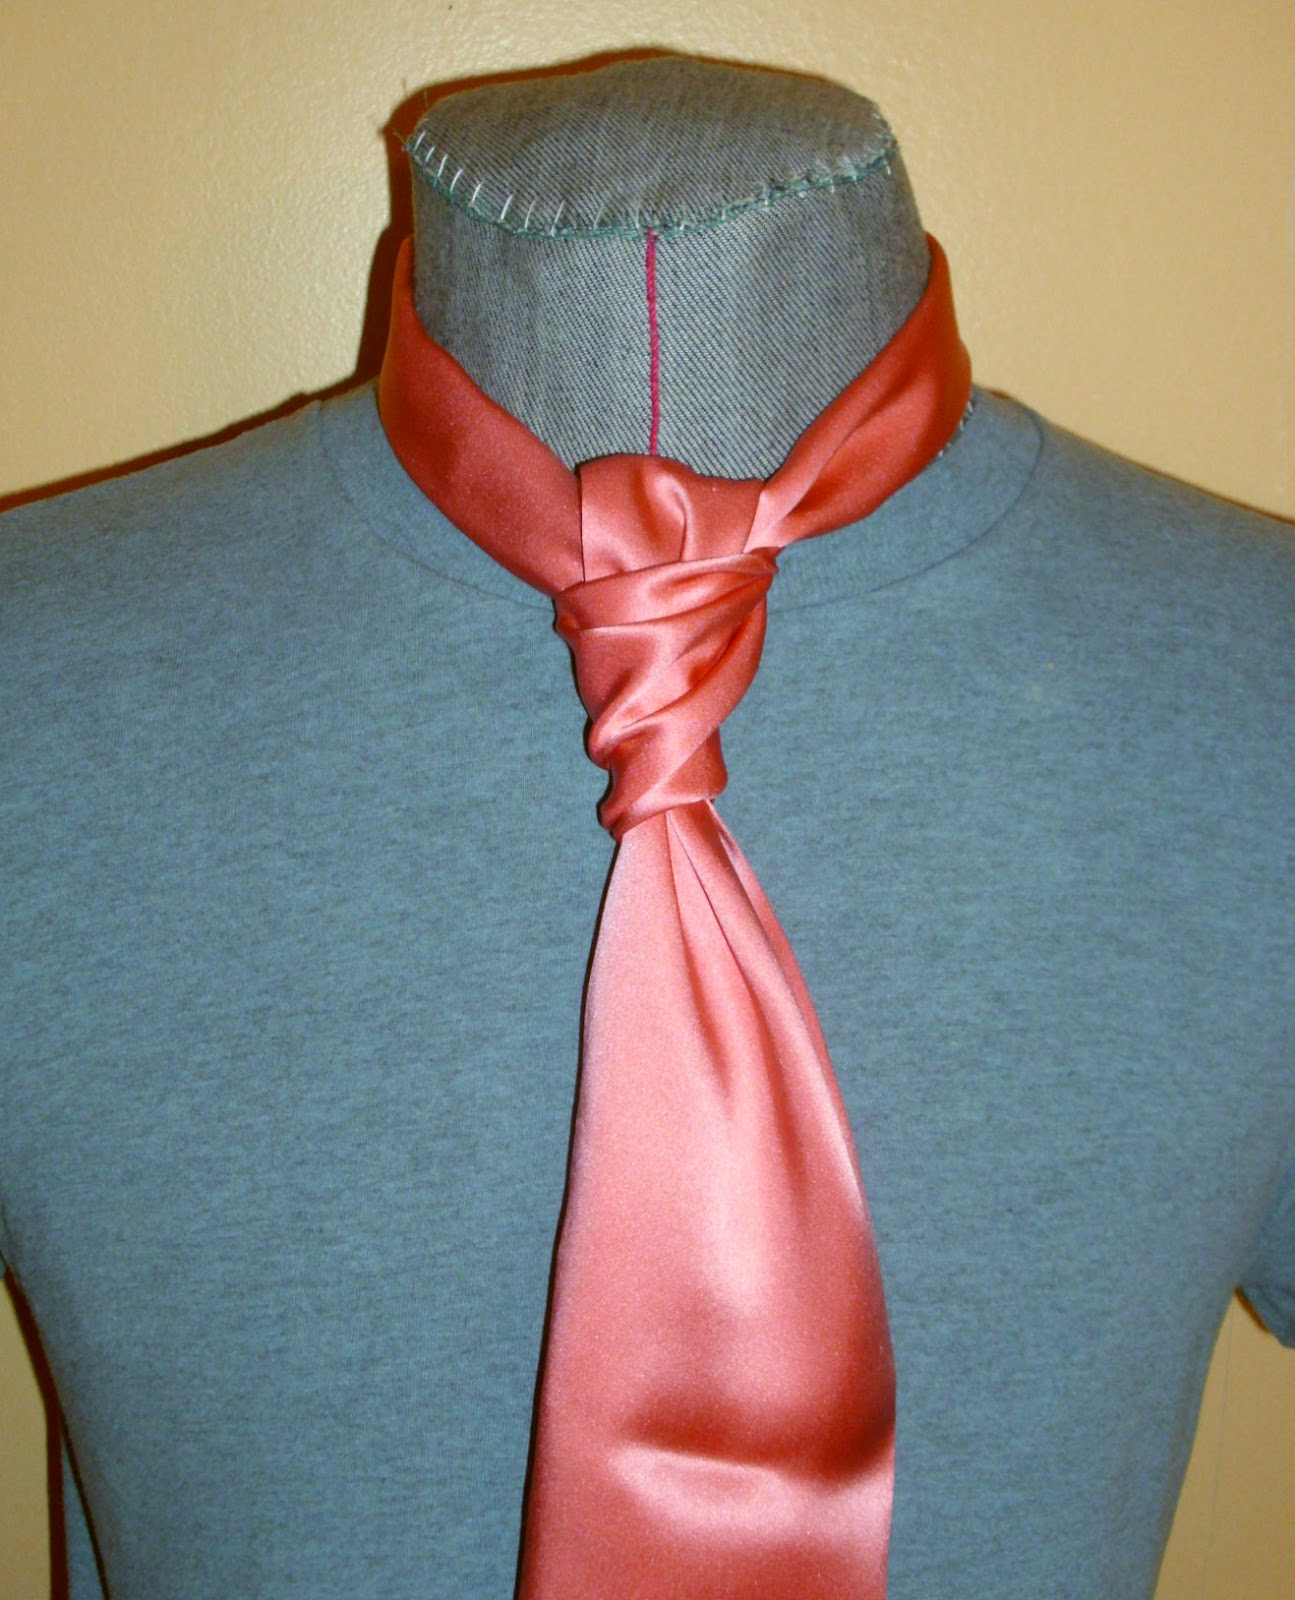 81b58f615c9b The Ruche tie, which is simply an ascot tied like a four-in-hand, is  sometimes used where the ascot would seem too showy, or where the  personality of the ...